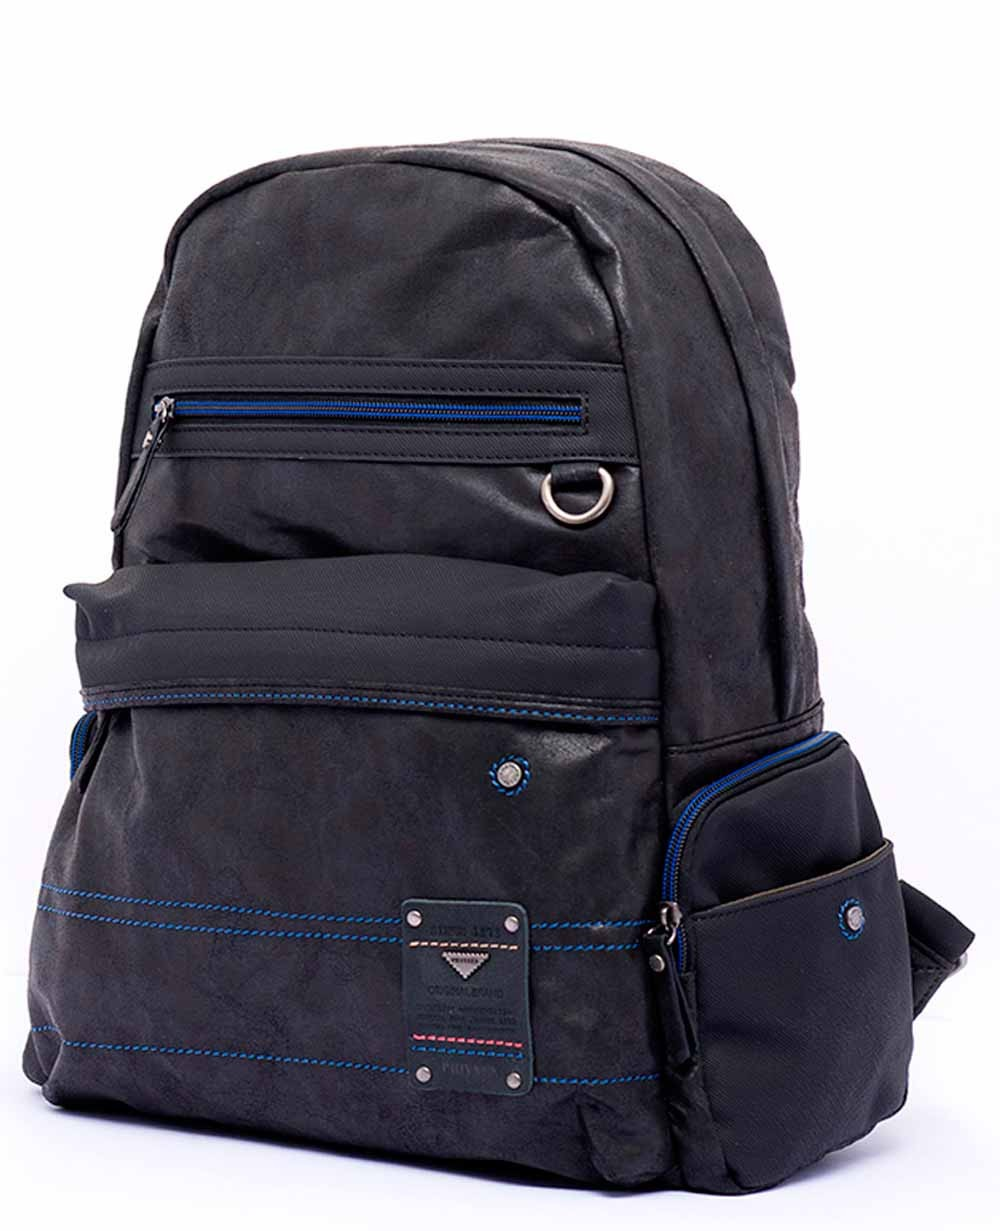 "Privata Switch 13.4"" Mochila Negra (Foto )"